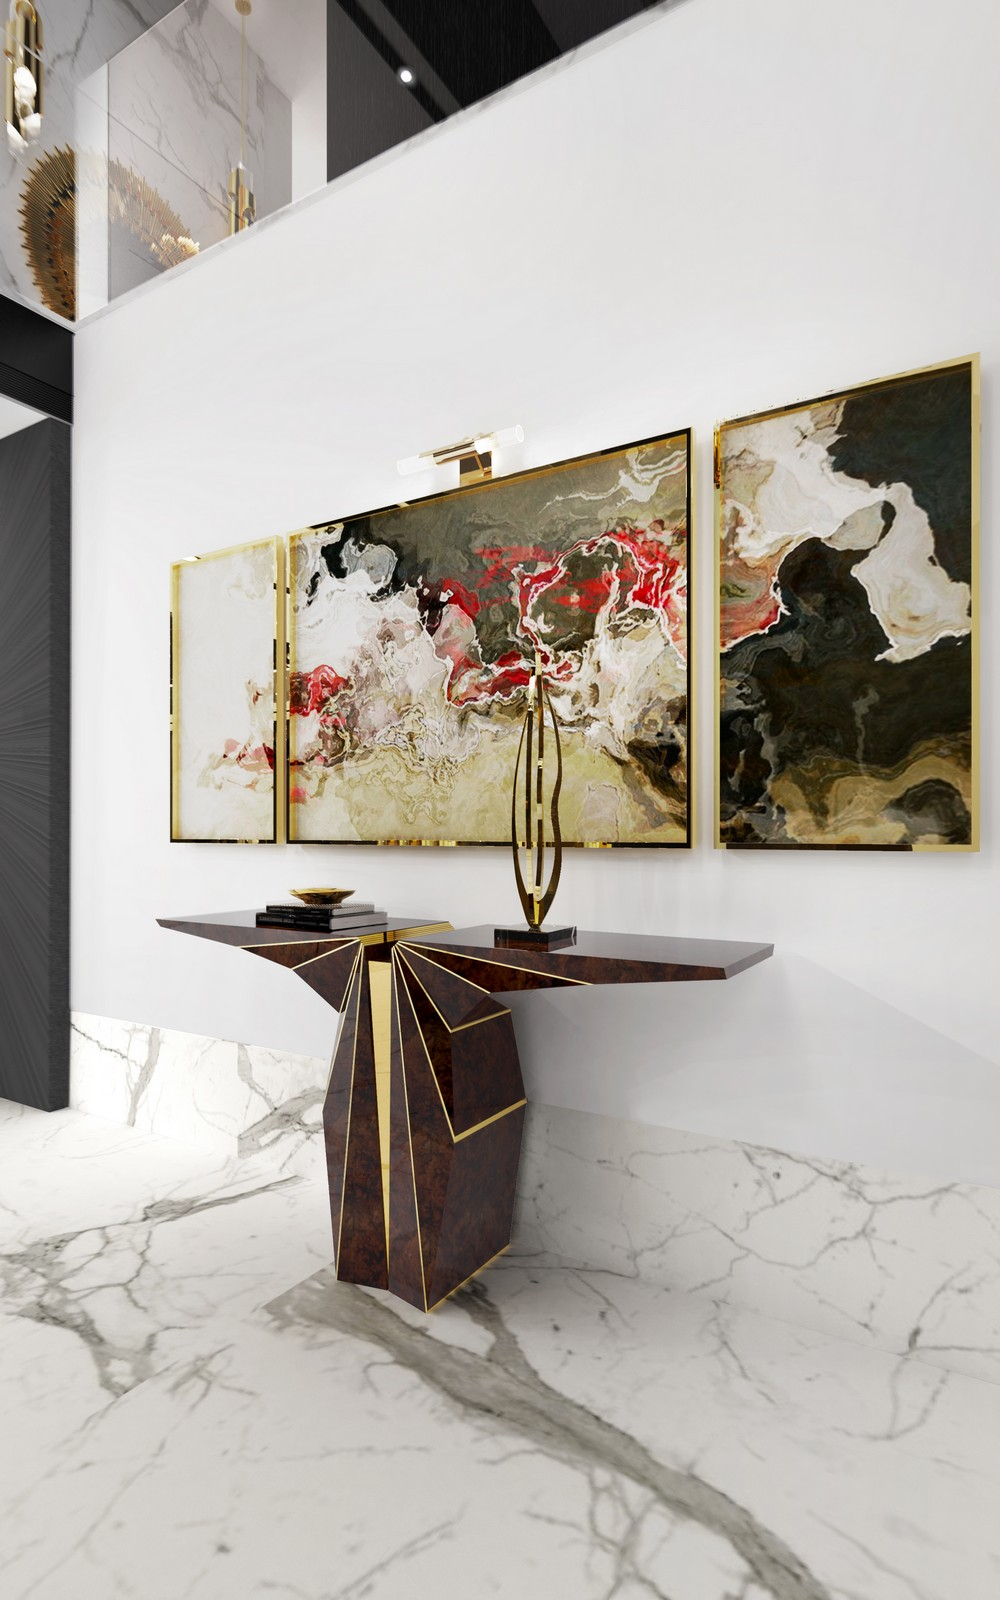 25 Luxury Sideboards Consoles to Consider for a Bold Design Concept 24 luxury sideboards 25 Luxury Sideboards & Consoles to Consider for a Bold Design Concept 25 Luxury Sideboards Consoles to Consider for a Bold Design Concept 24